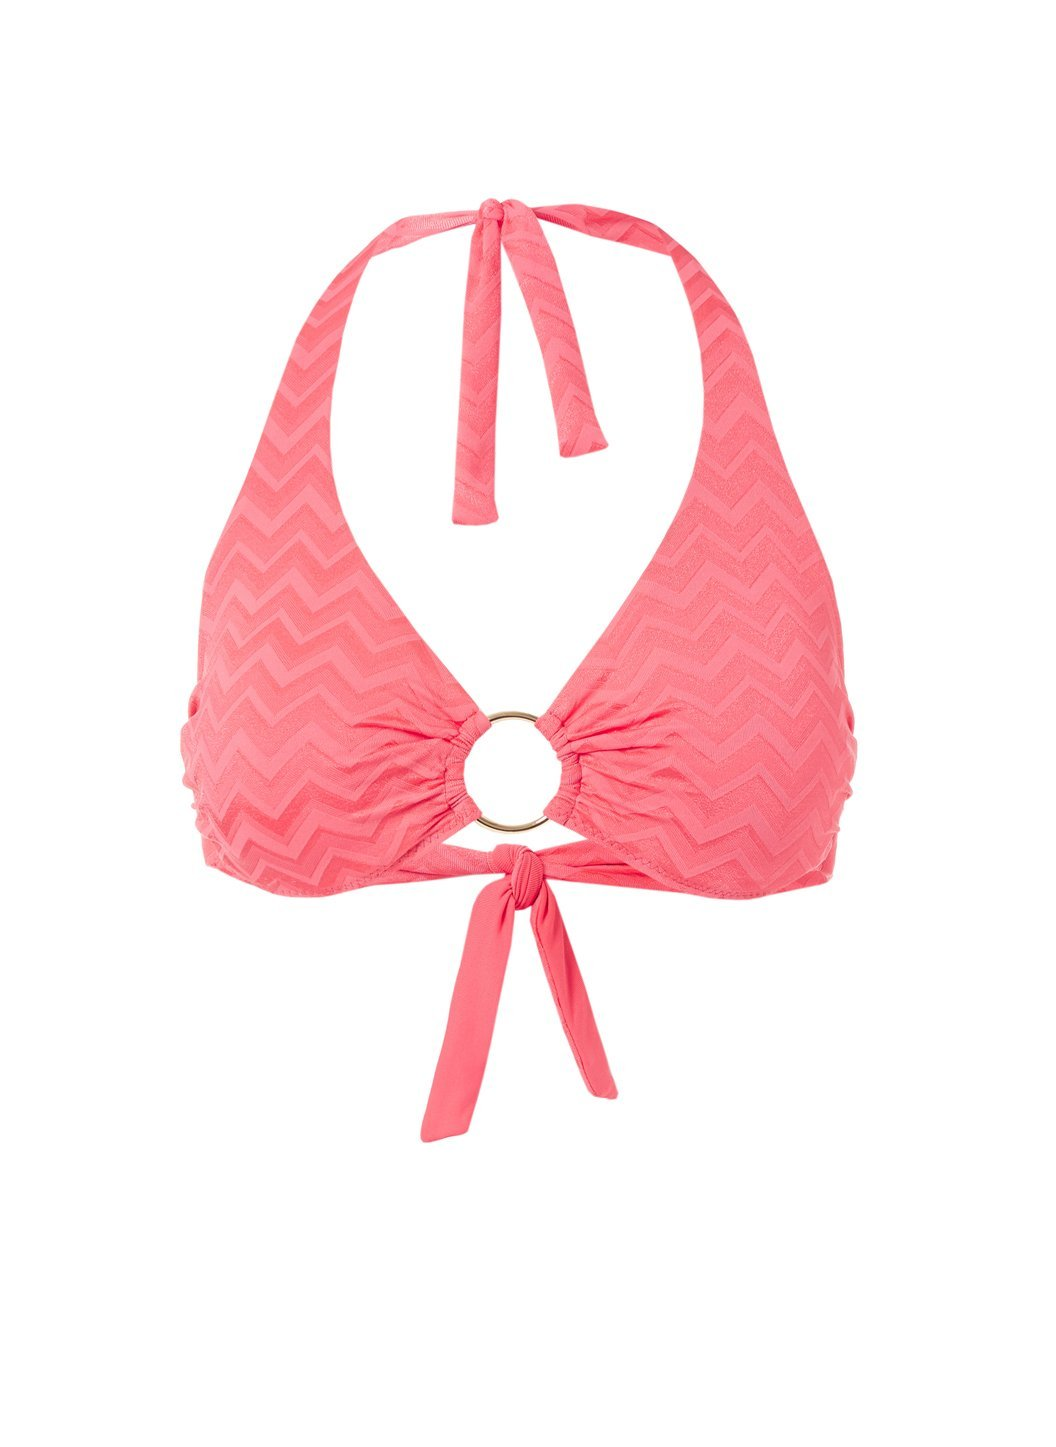 Brussels Coral Wave Halterneck Ring Supportive Bikini Top